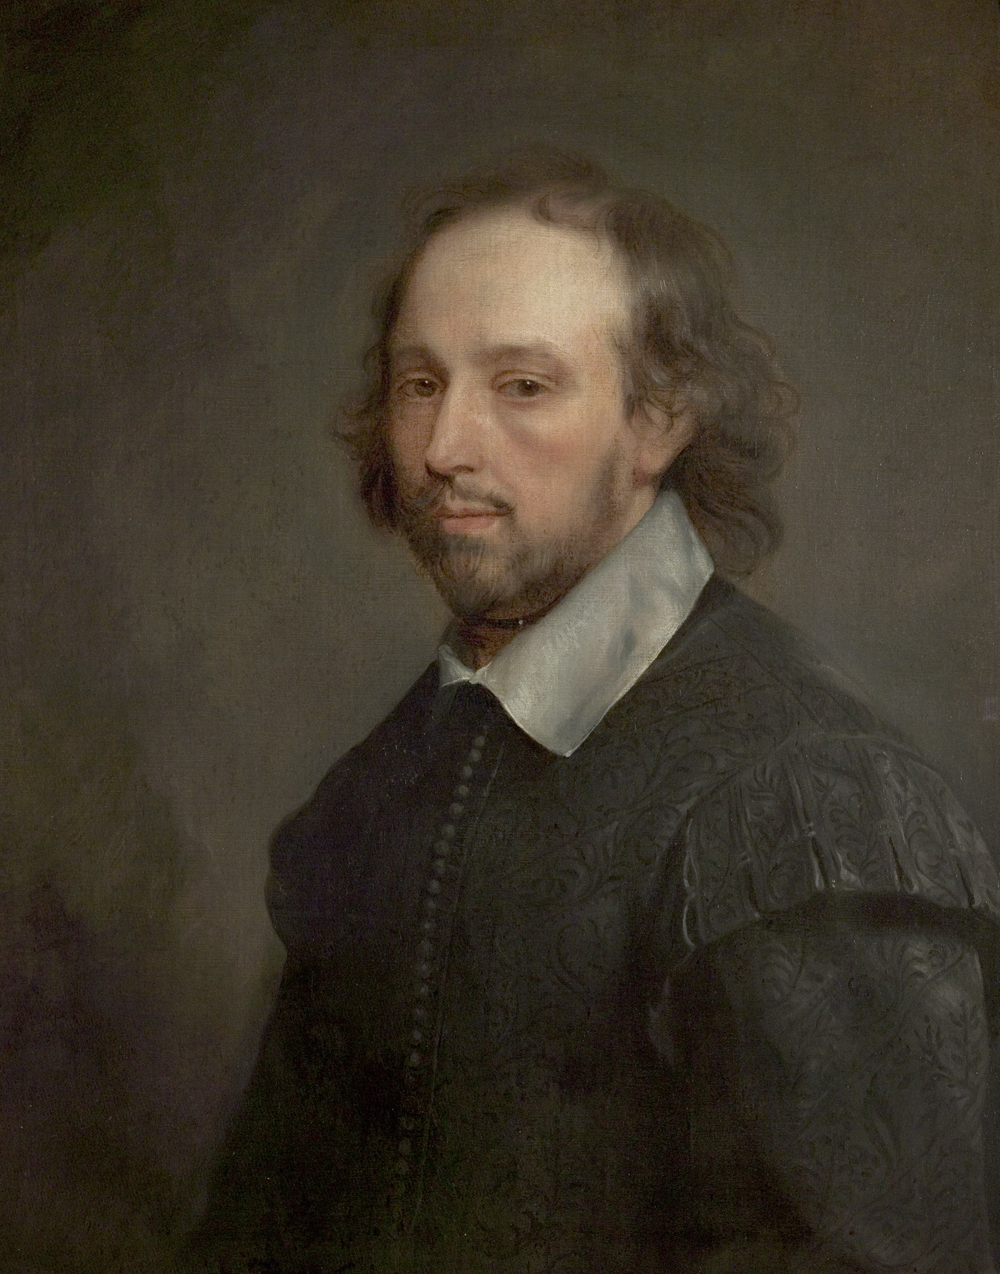 https://upload.wikimedia.org/wikipedia/commons/e/e3/Soest_portrait_of_Shakespeare.jpg